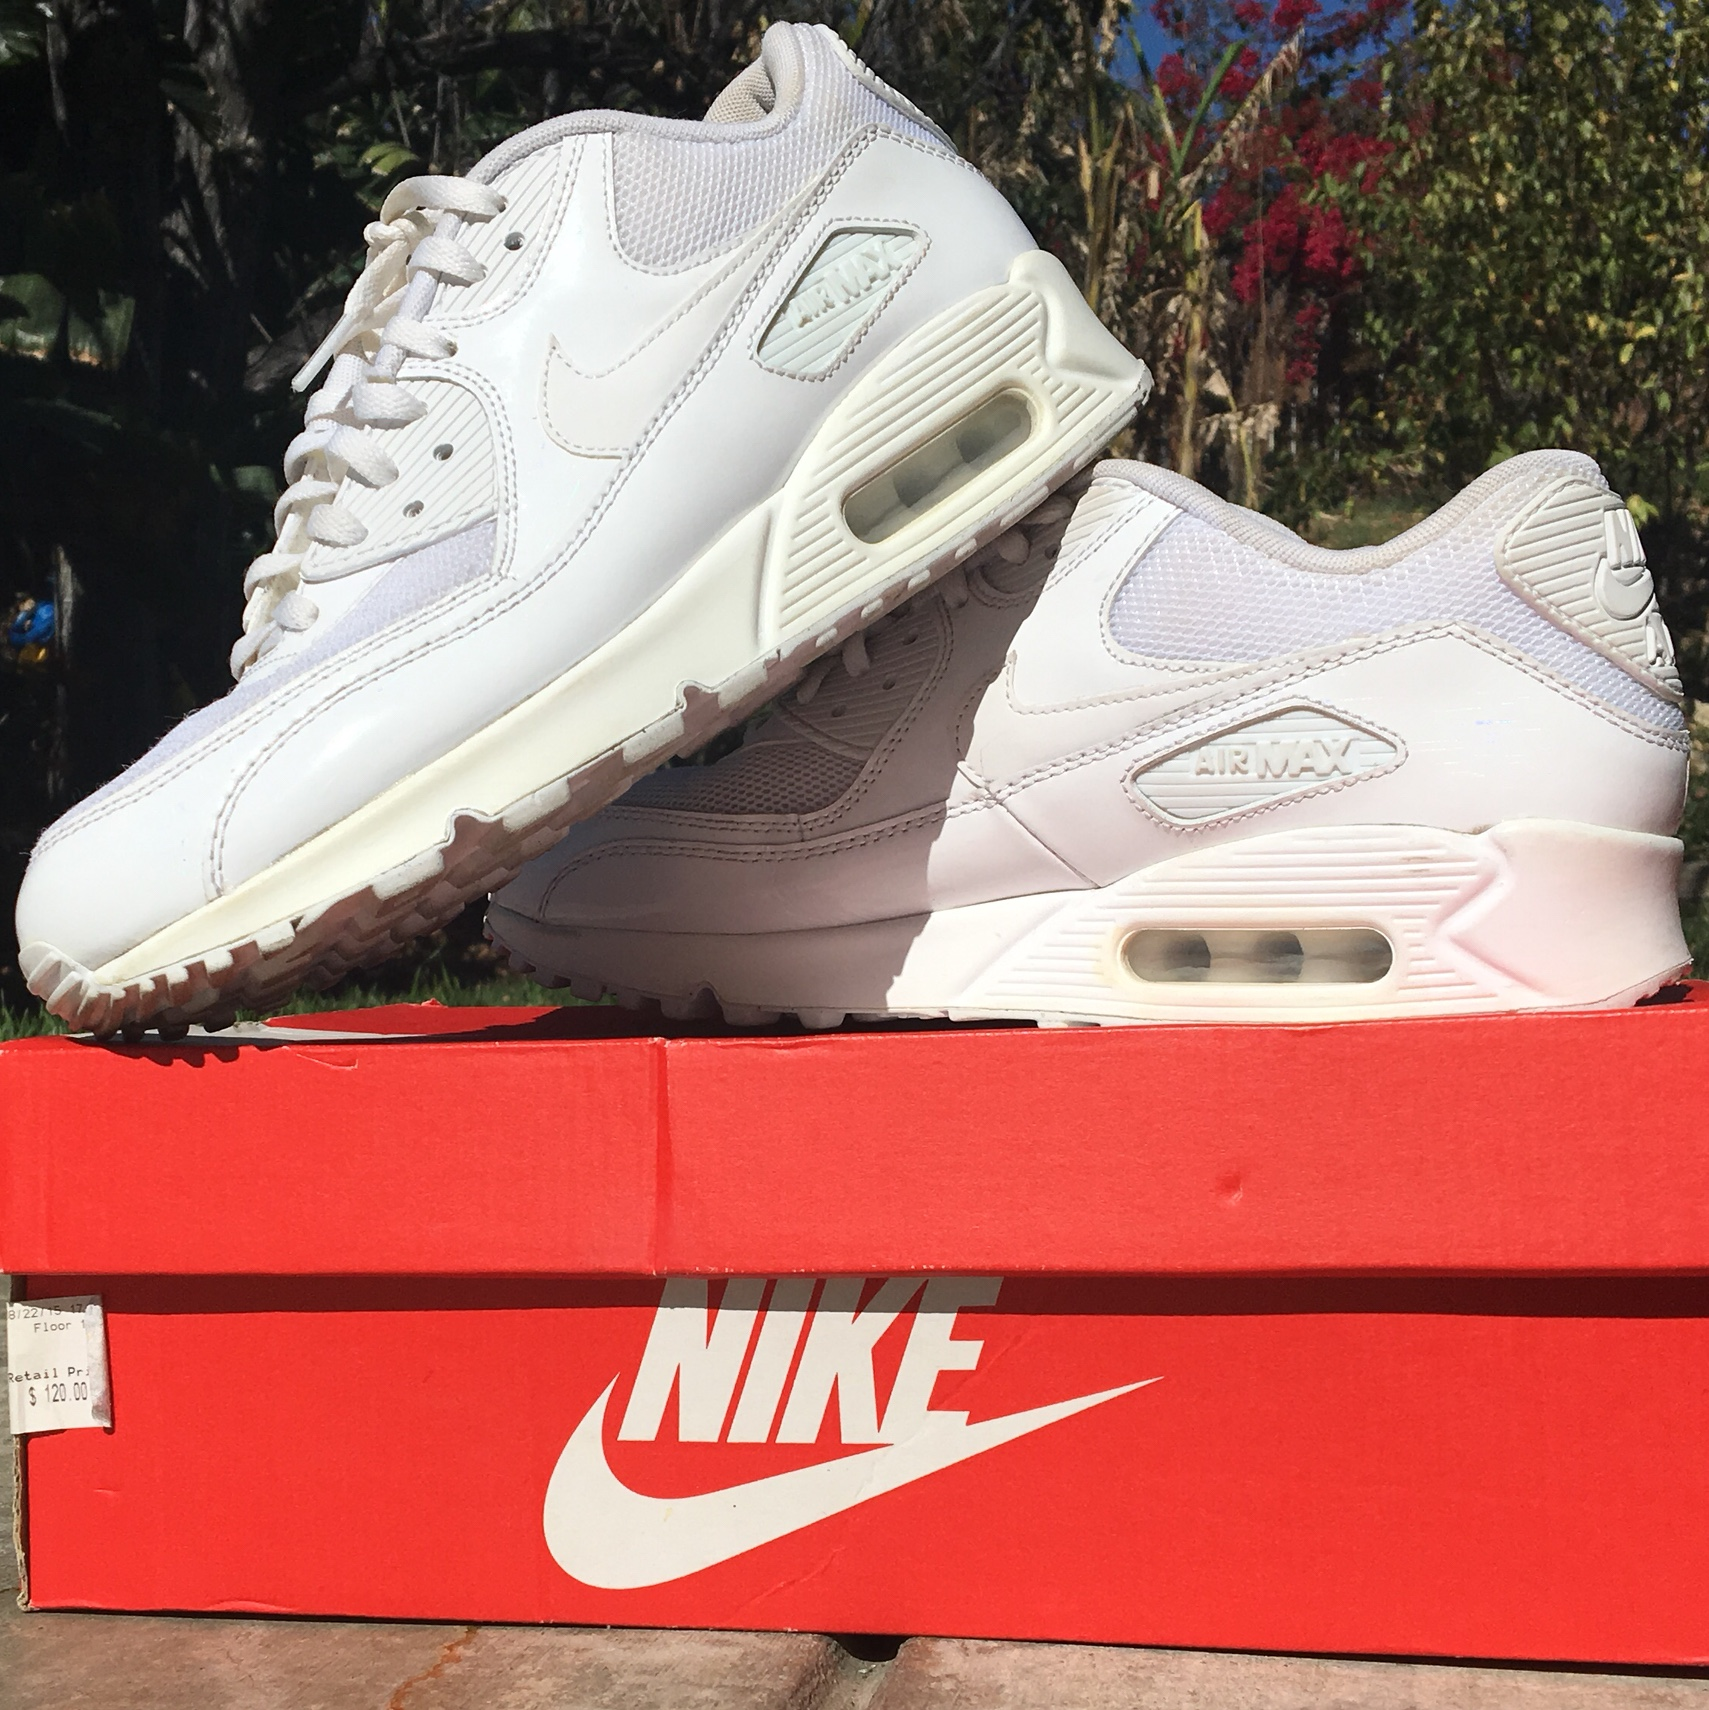 Women's Nike Air Max 90 Premium size 9.5 with Depop